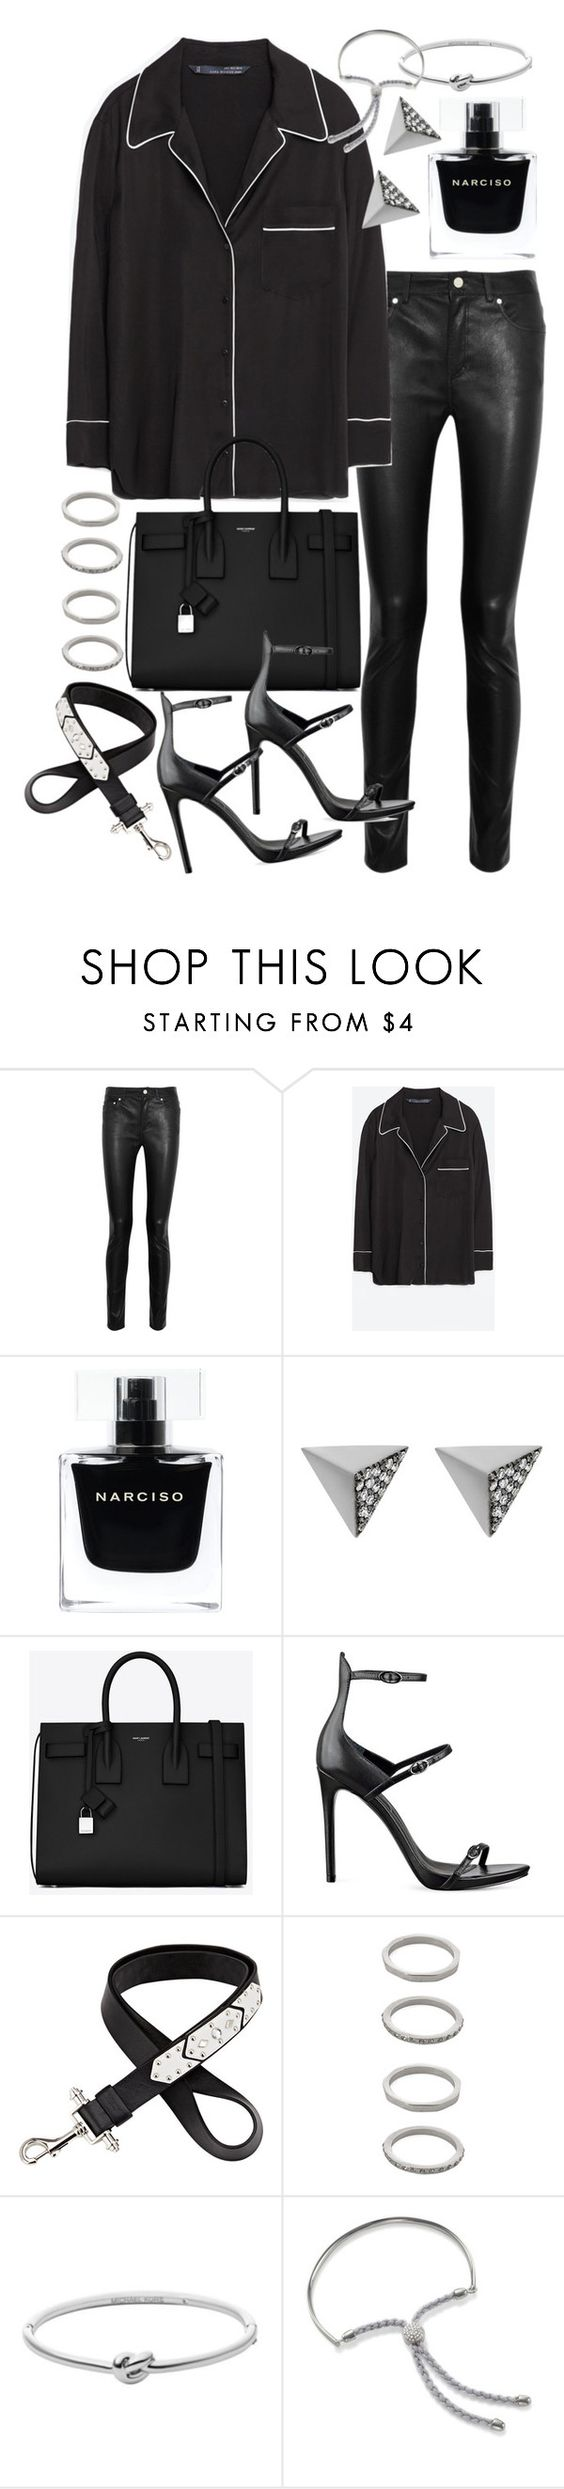 """""""Untitled #19799"""" by florencia95 ❤ liked on Polyvore featuring Acne Studios, Zara, Narciso Rodriguez, Ileana Makri, Yves Saint Laurent, Kendall + Kylie, Givenchy, Forever 21, Michael Kors and Monica Vinader"""